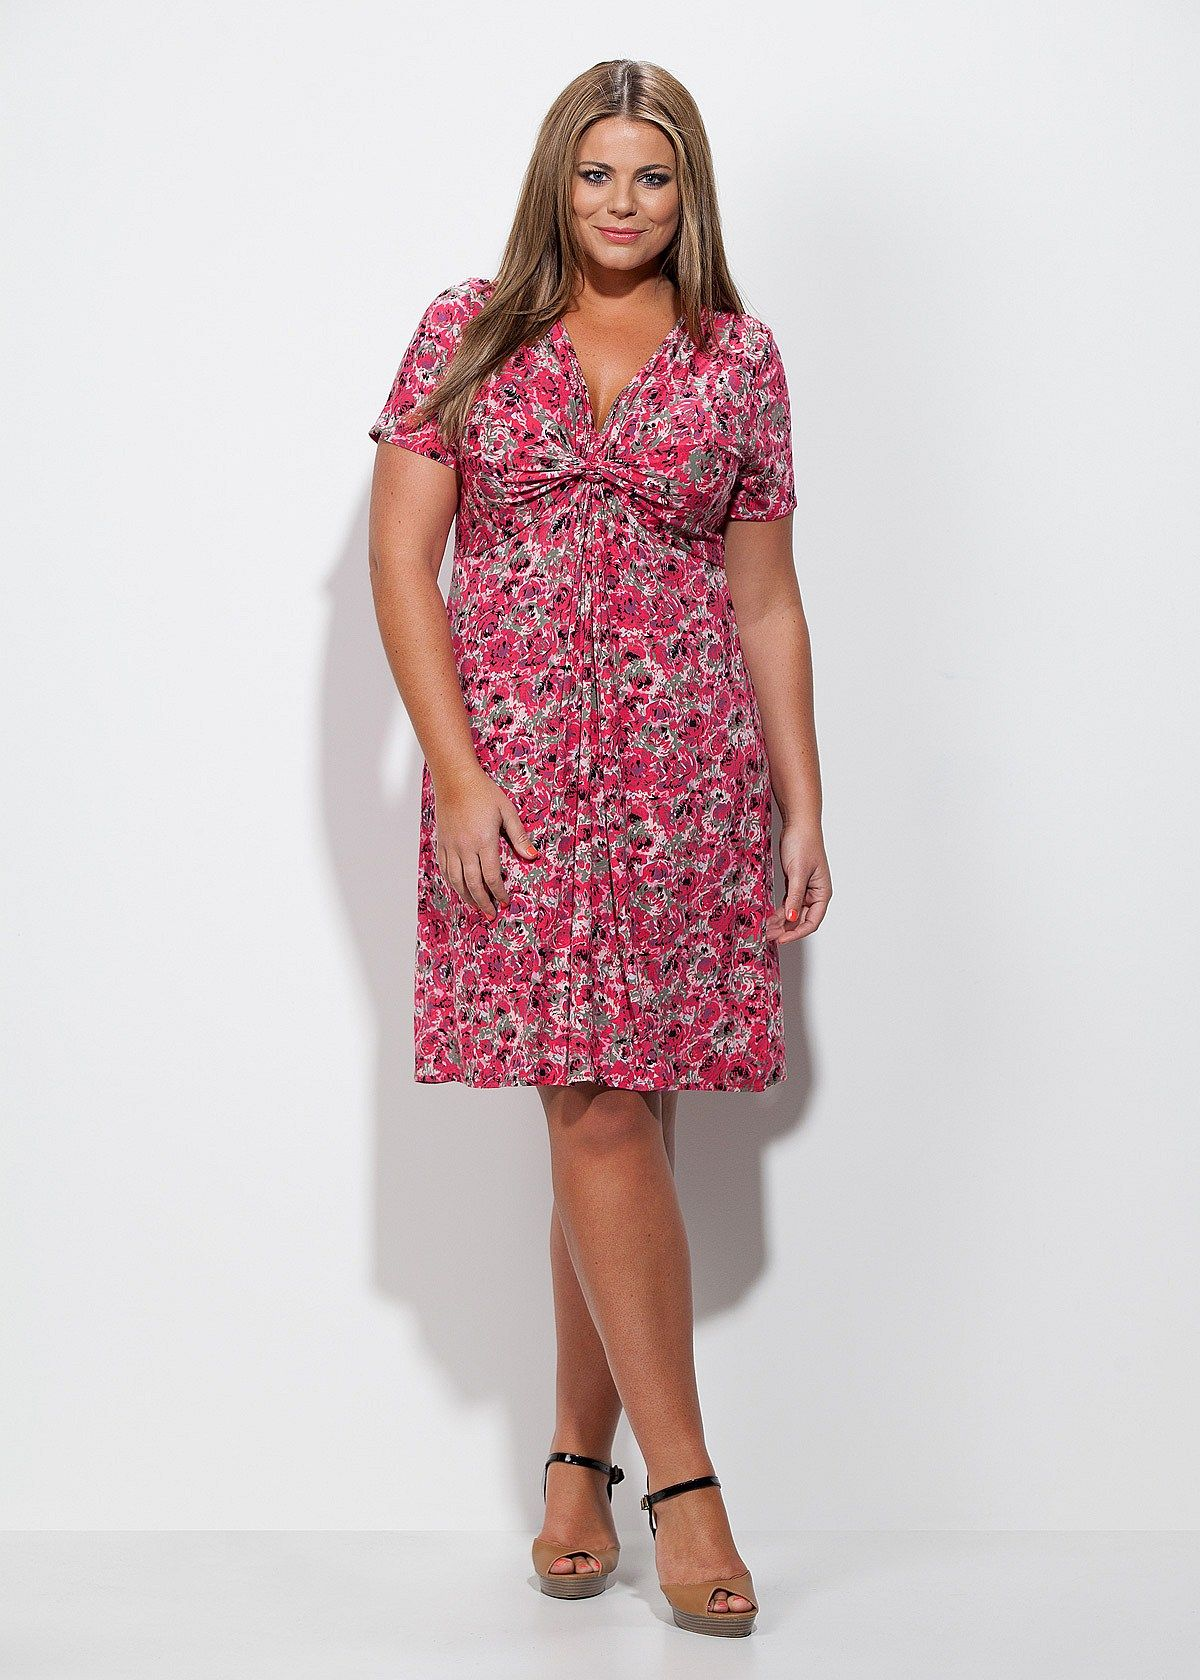 Plus size australian dresses clothing